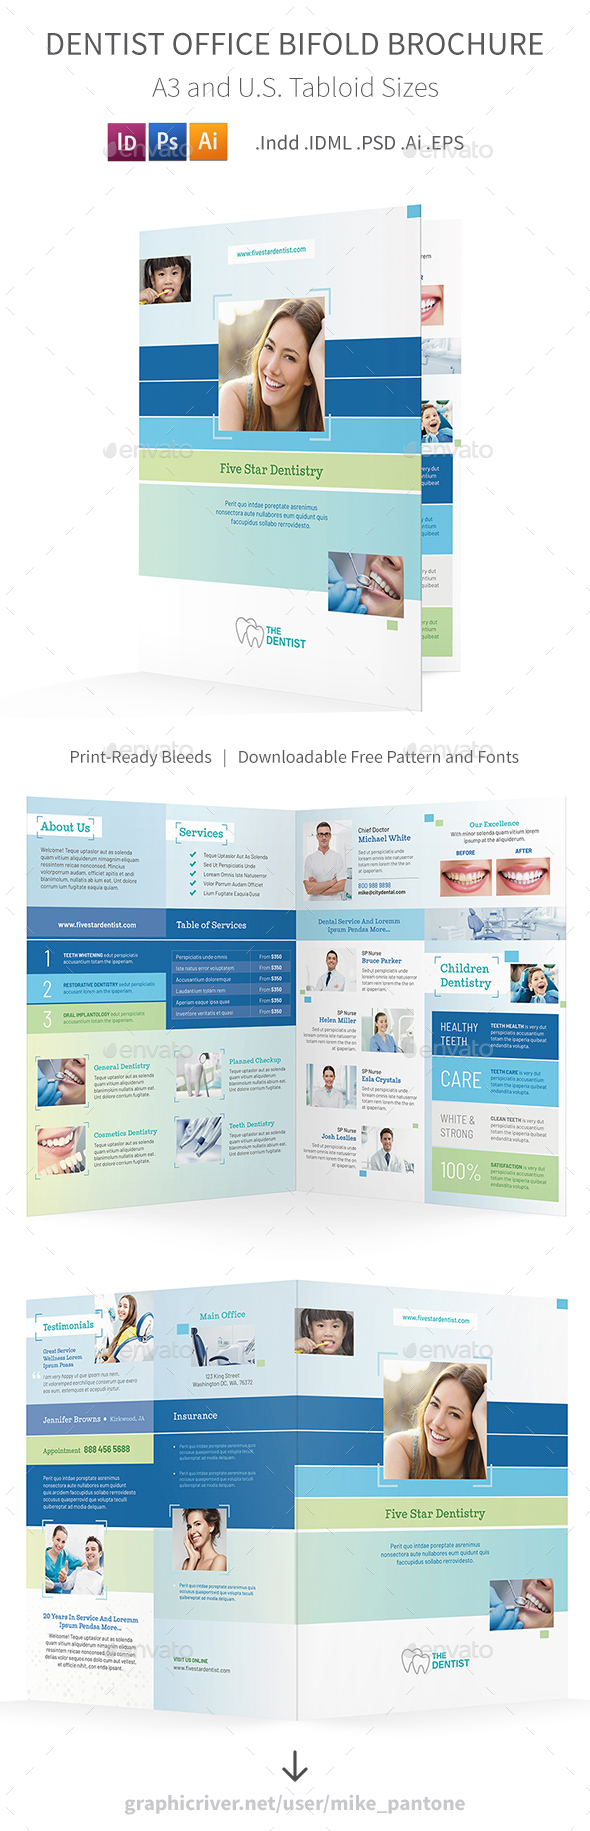 GraphicRiver Dentist Office Bifold Halffold Brochure 5 20995793